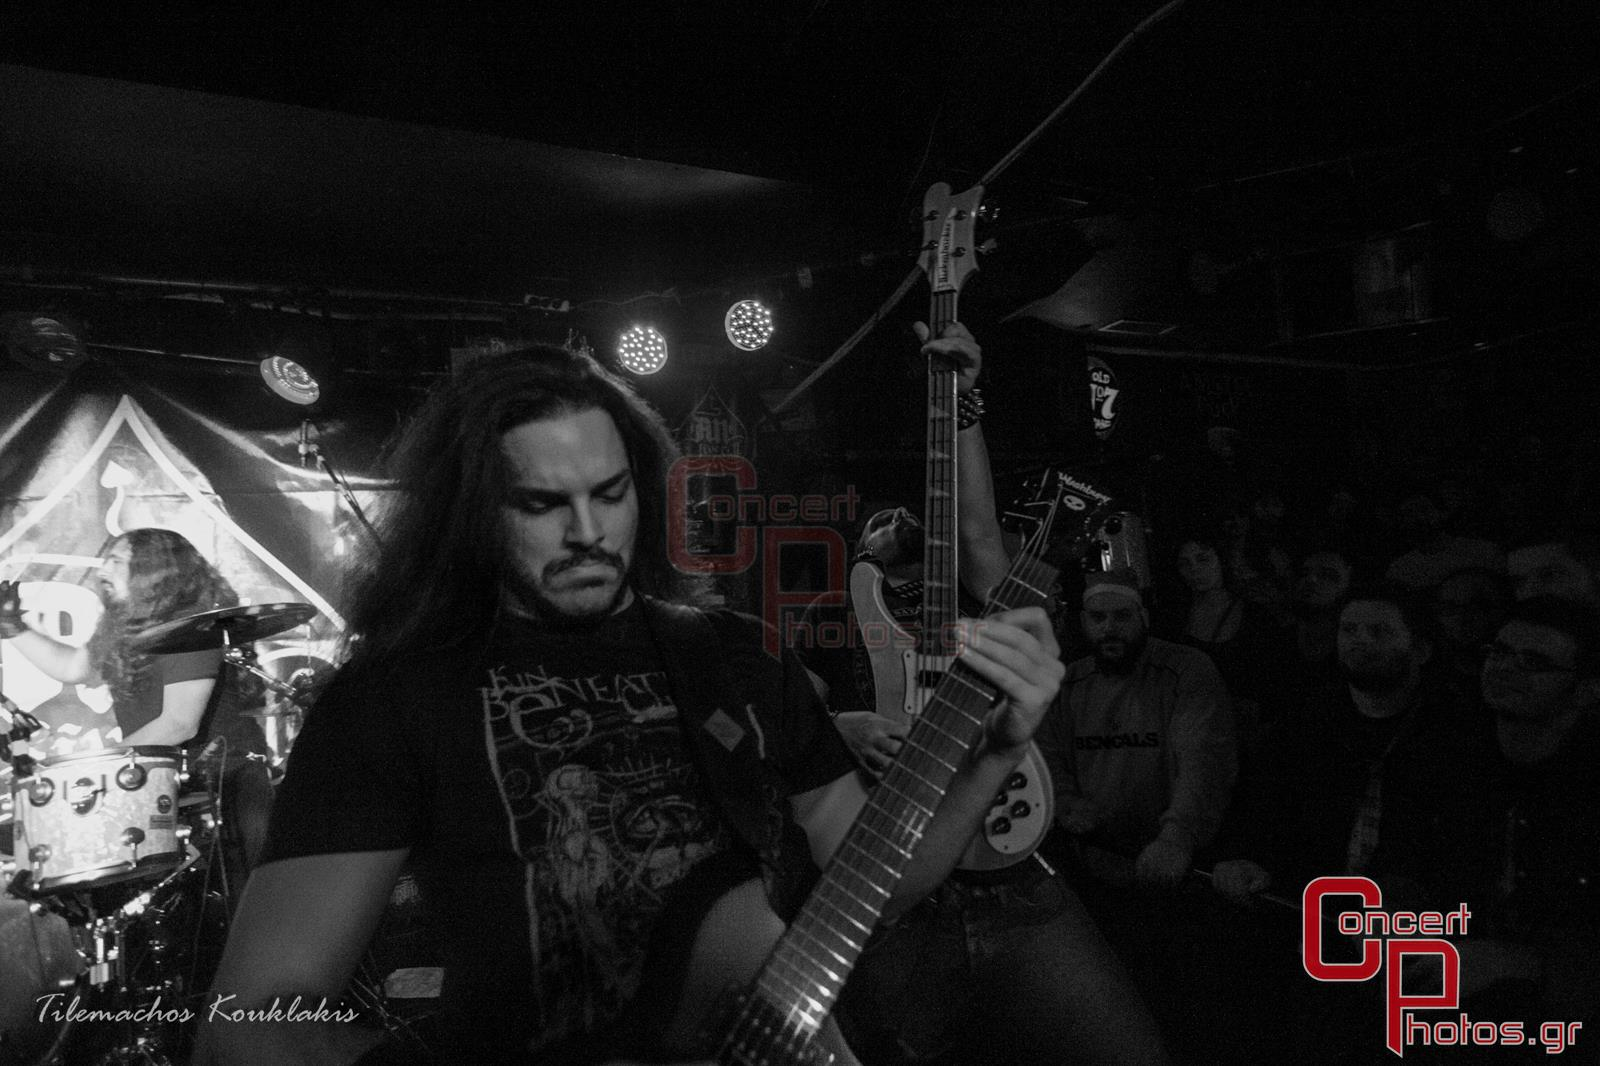 Nightstalker-Nightstalker AN Club photographer:  - concertphotos_-20